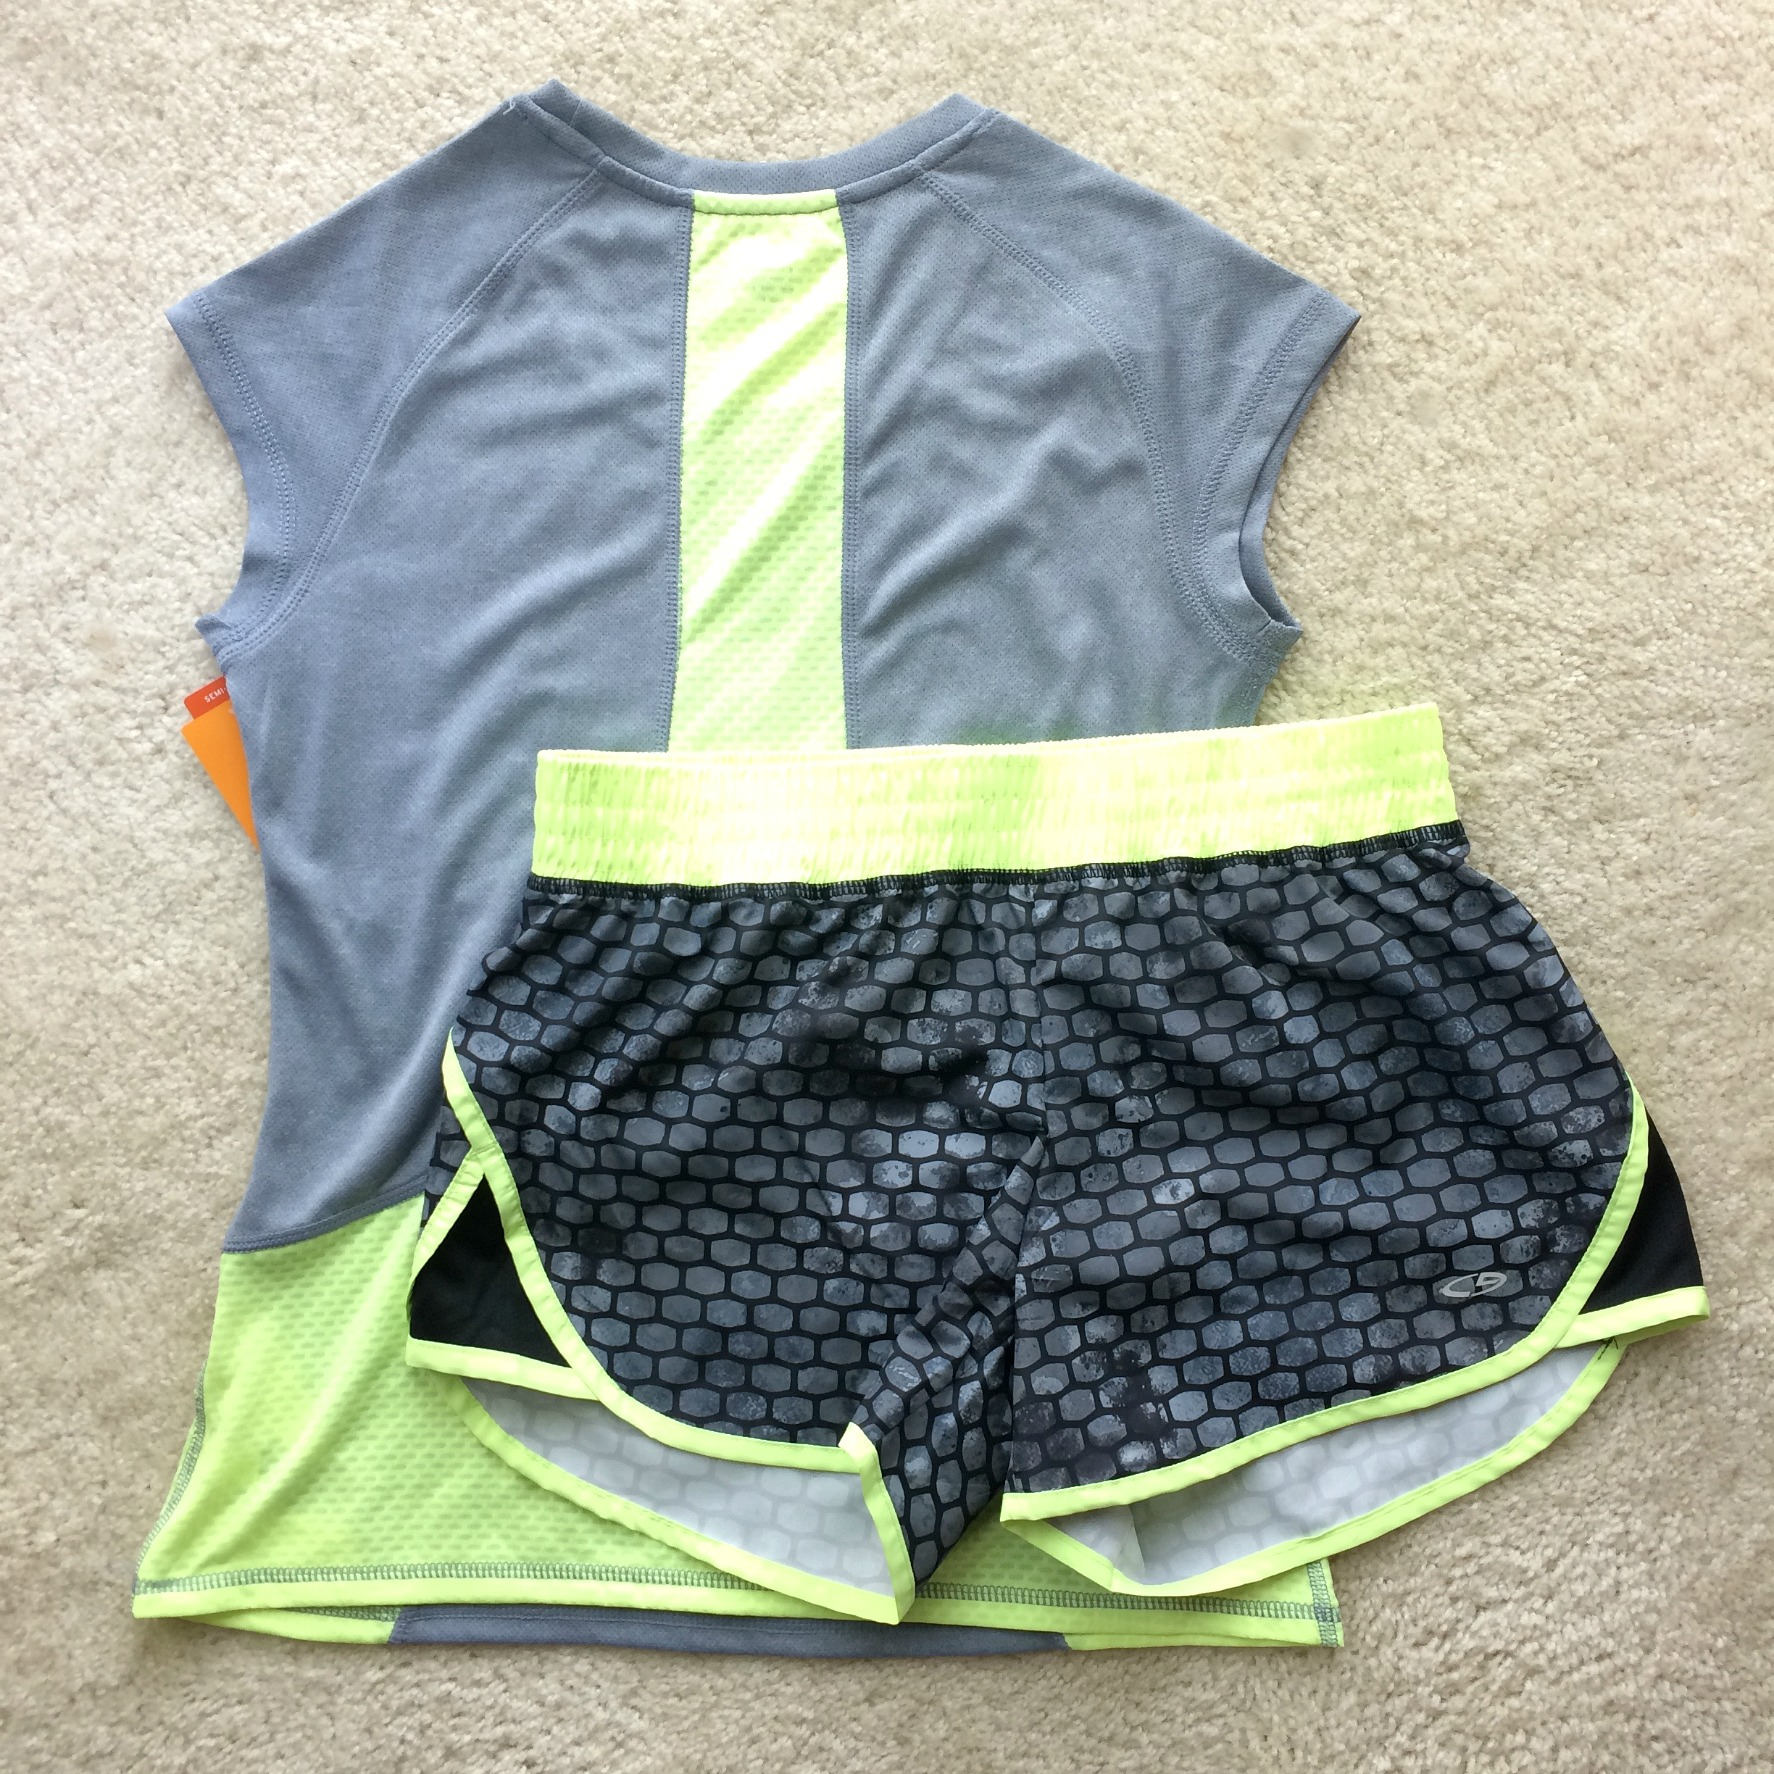 c9 running shirt and shorts from target